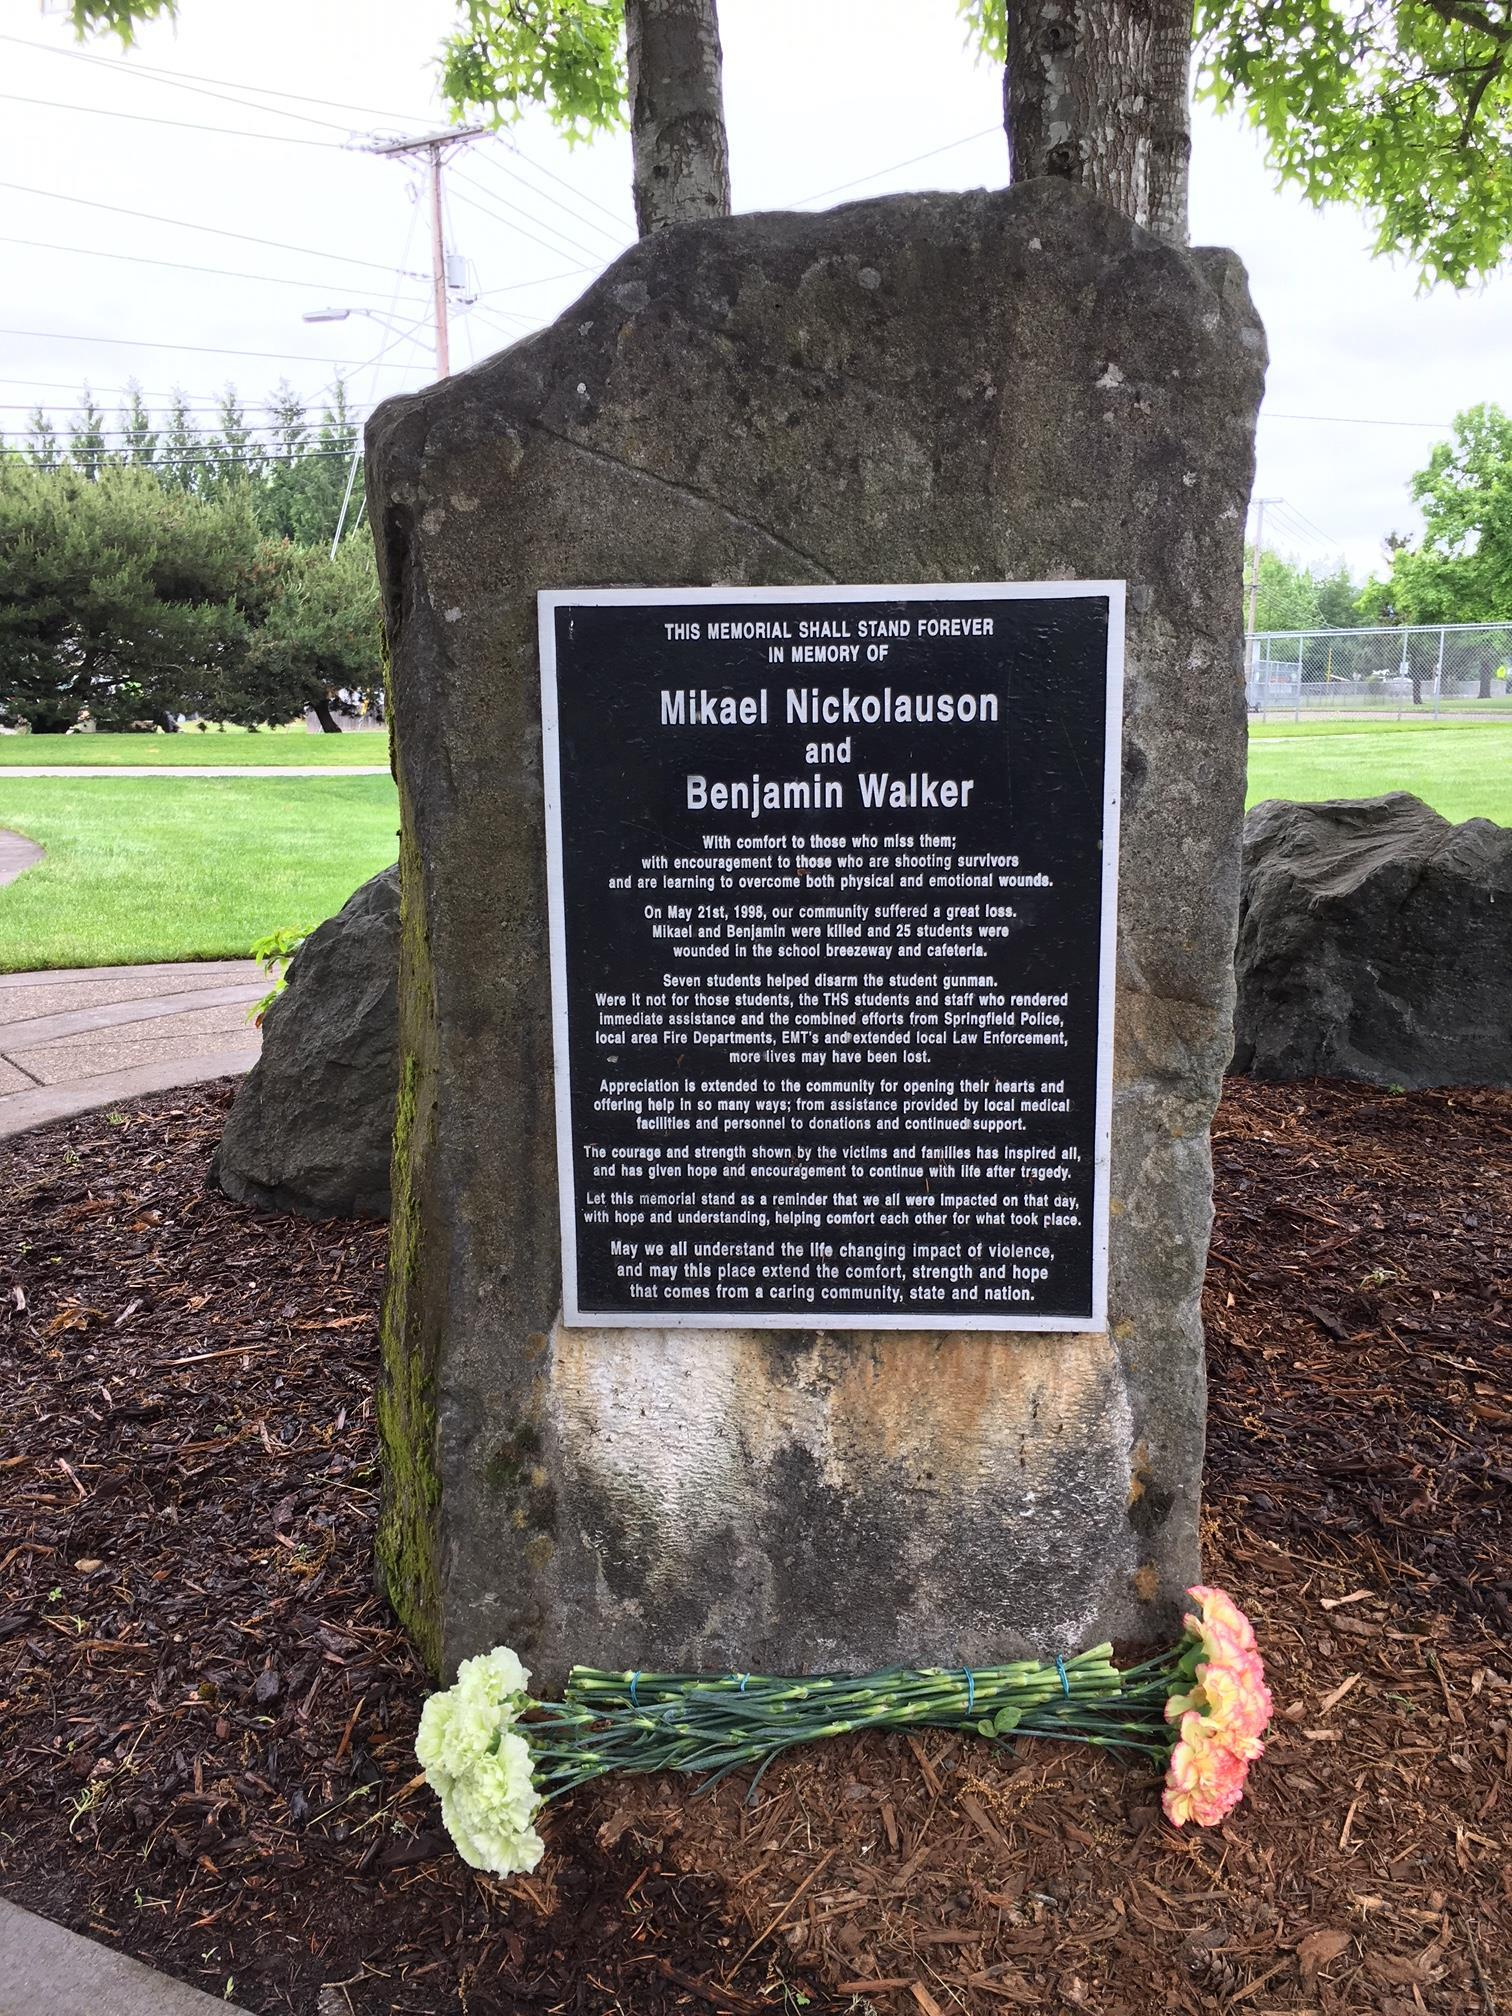 A 15-year-old shot and killed students Ben Walker and Mikael Nickolauson and wounded 26 others May 21, 1998, at Thurston High School, after killing his parents the day before. Memorials on campus pay tribute to those killed and injured - and call for a more peaceful future. (SBG)